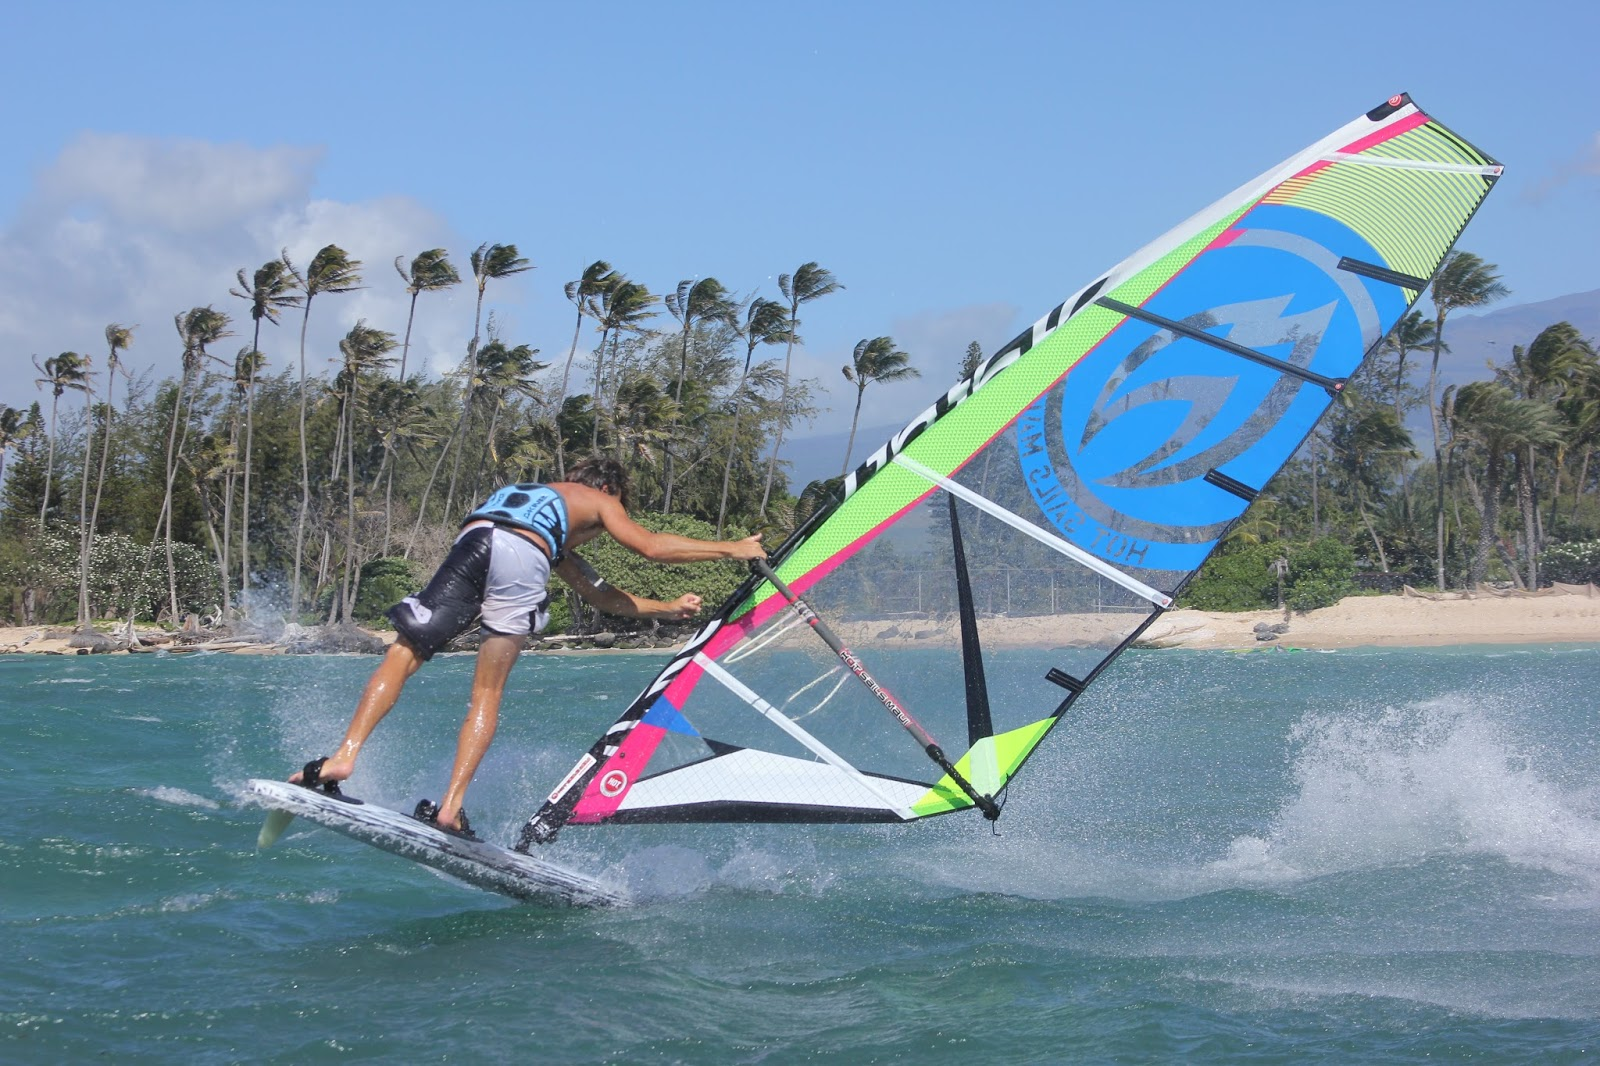 HOT SAILS MAUI-WINDSURFING